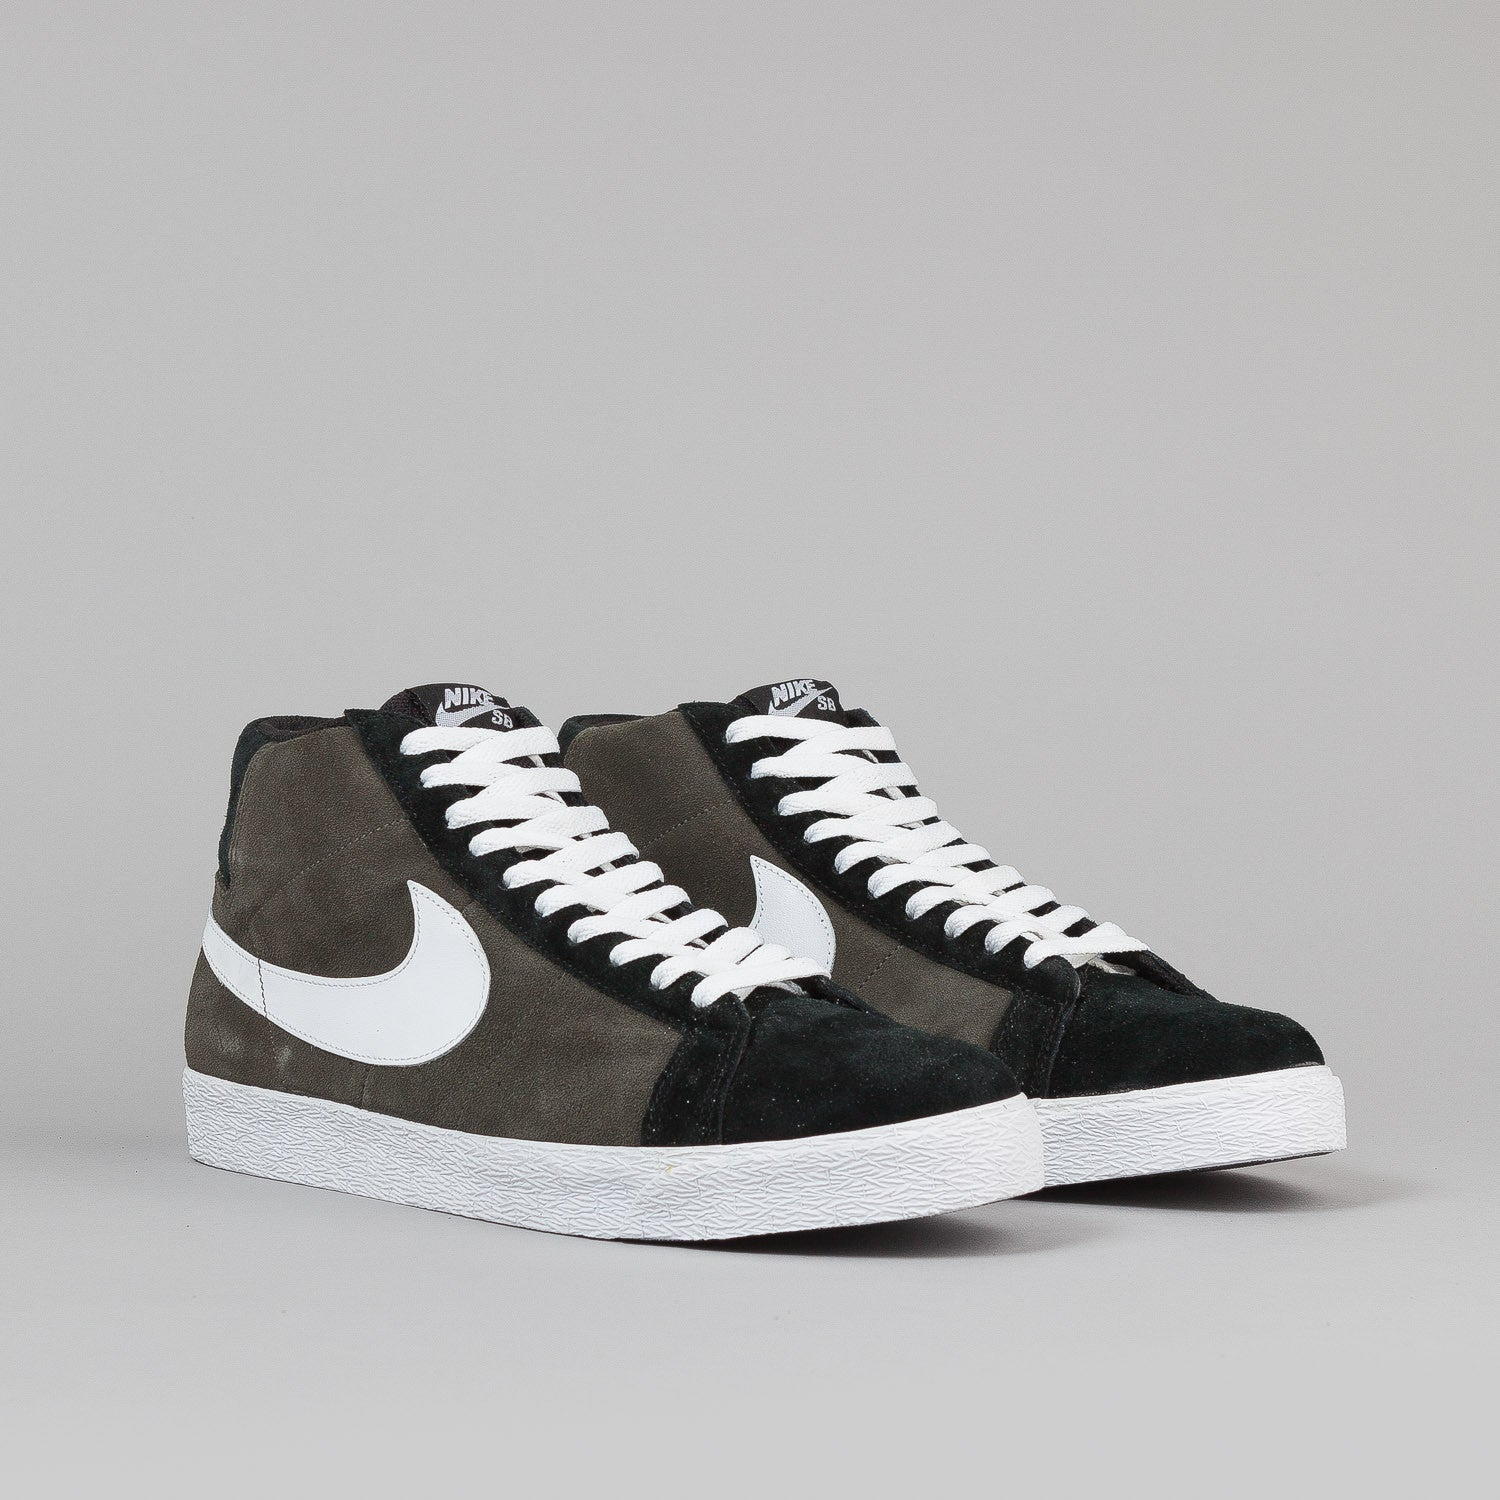 Nike SB Blazer Shoes - Newsprint / White